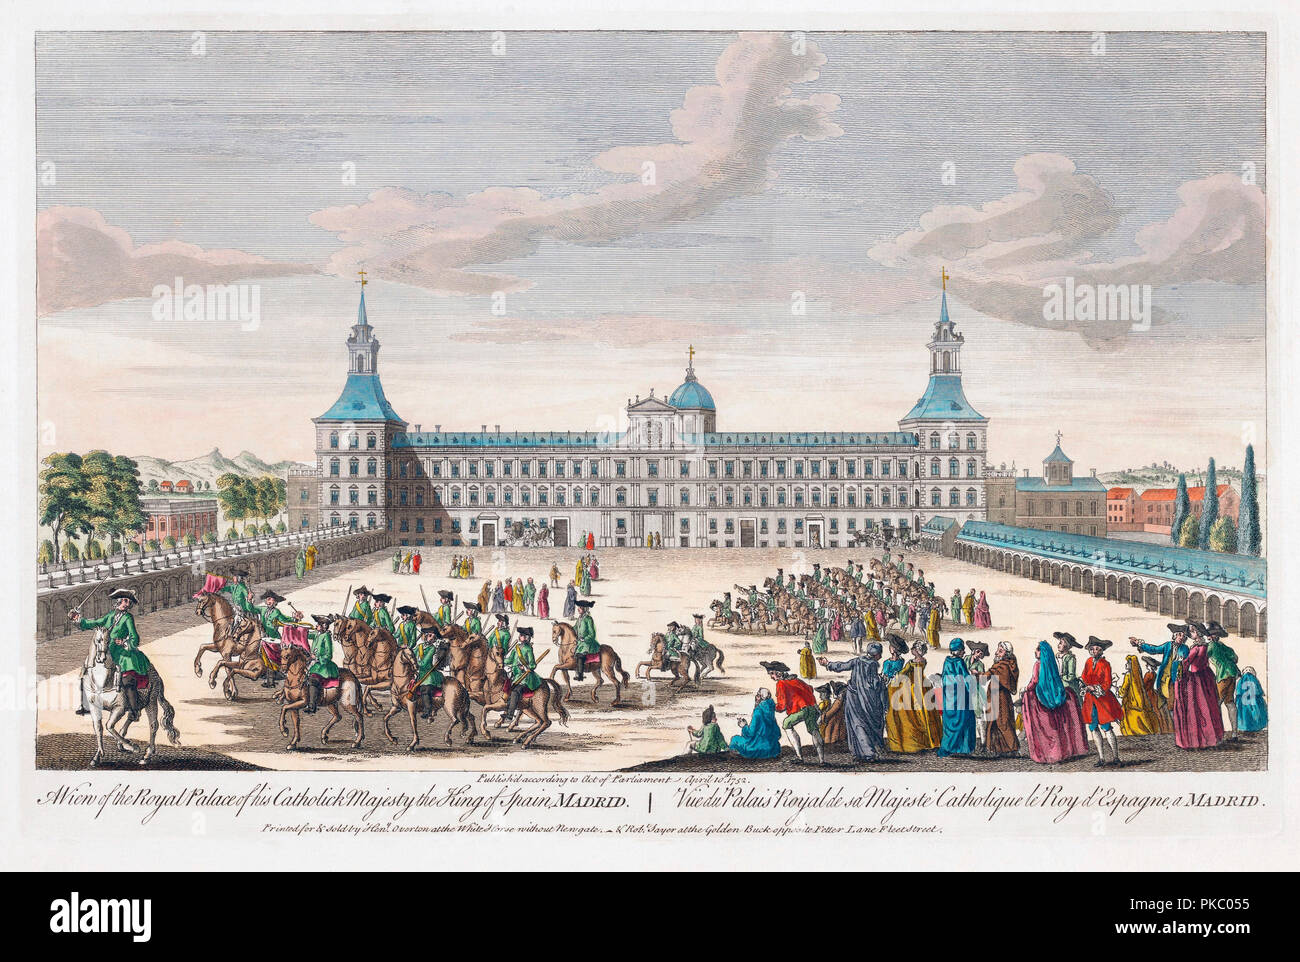 A view of the royal palace of his Catholic Majesty the King of Spain, Madrid.  Hand coloured engraving dated 1752. - Stock Image